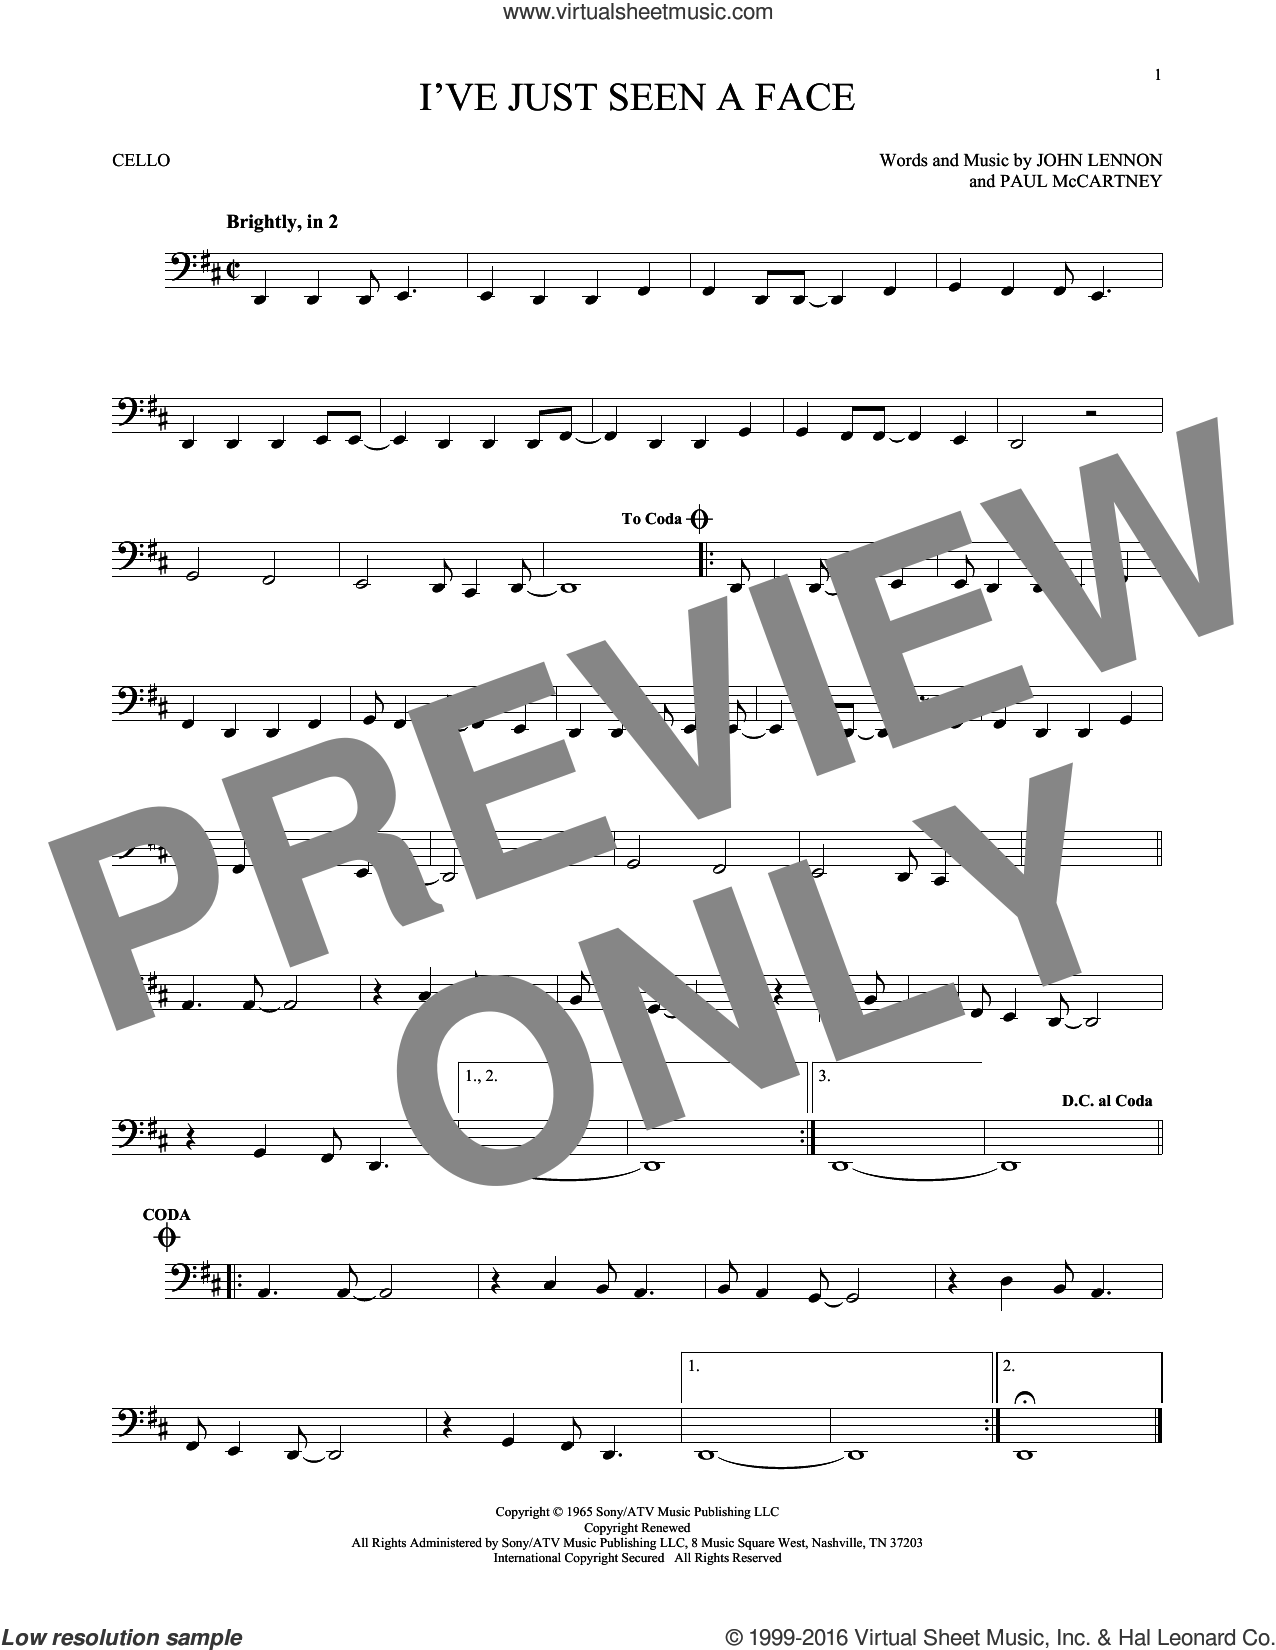 I've Just Seen A Face sheet music for cello solo by The Beatles, John Lennon and Paul McCartney, intermediate skill level